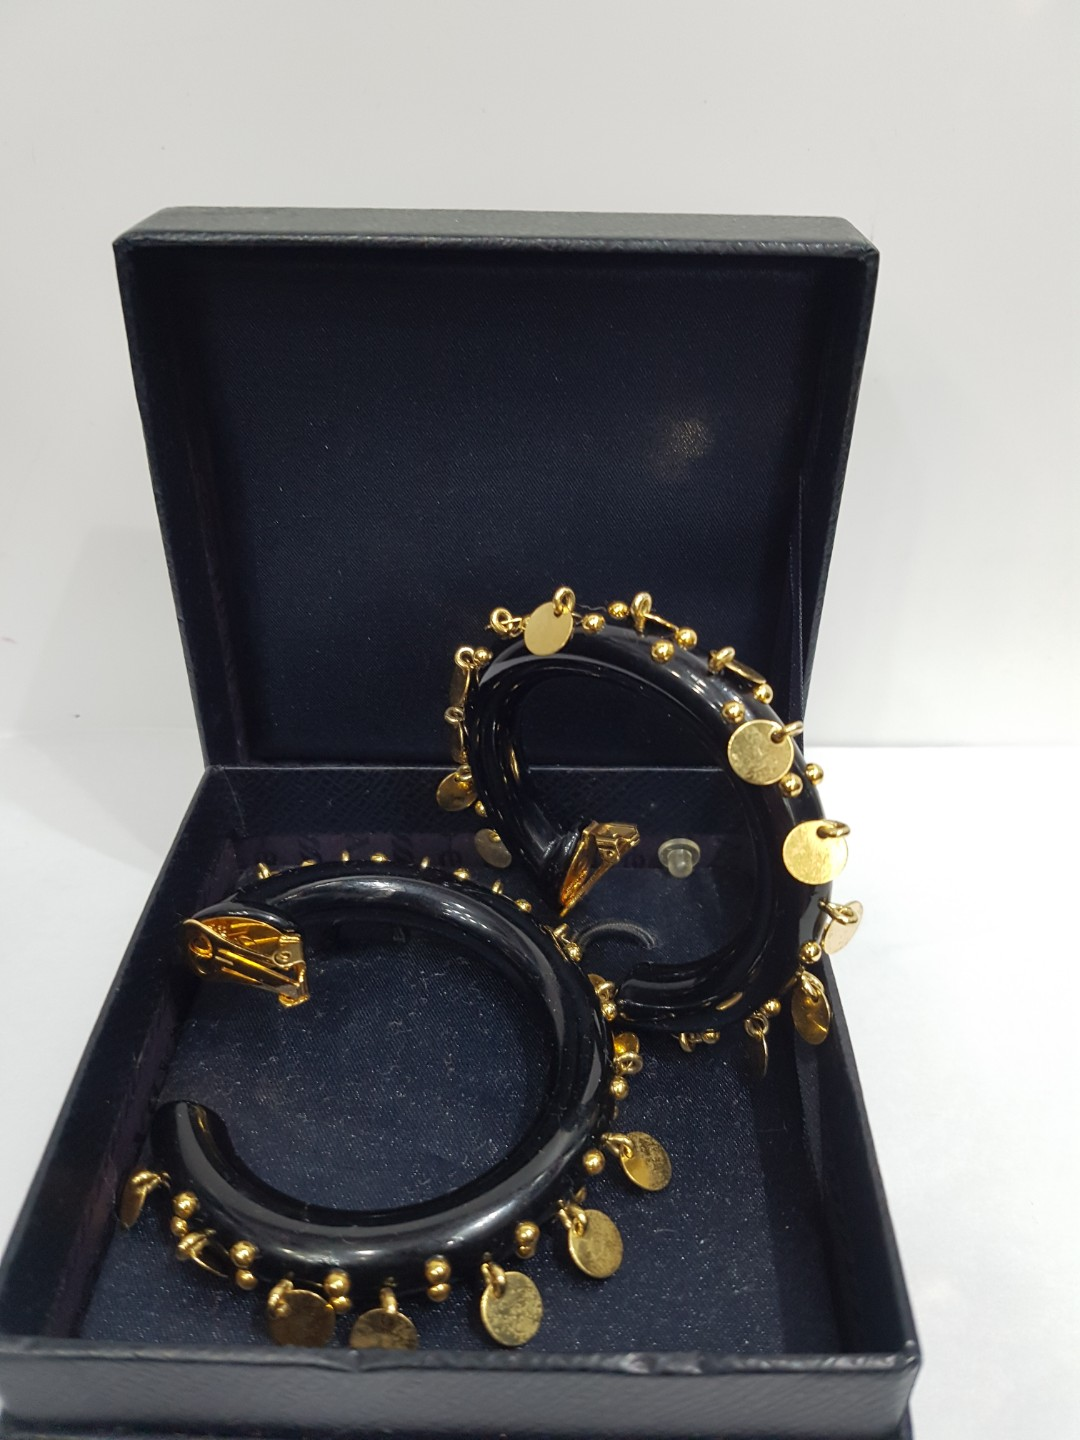 d65f2d5c1aa0e New Prada Women's Hoop Earring With Box (Black And Gold Details)